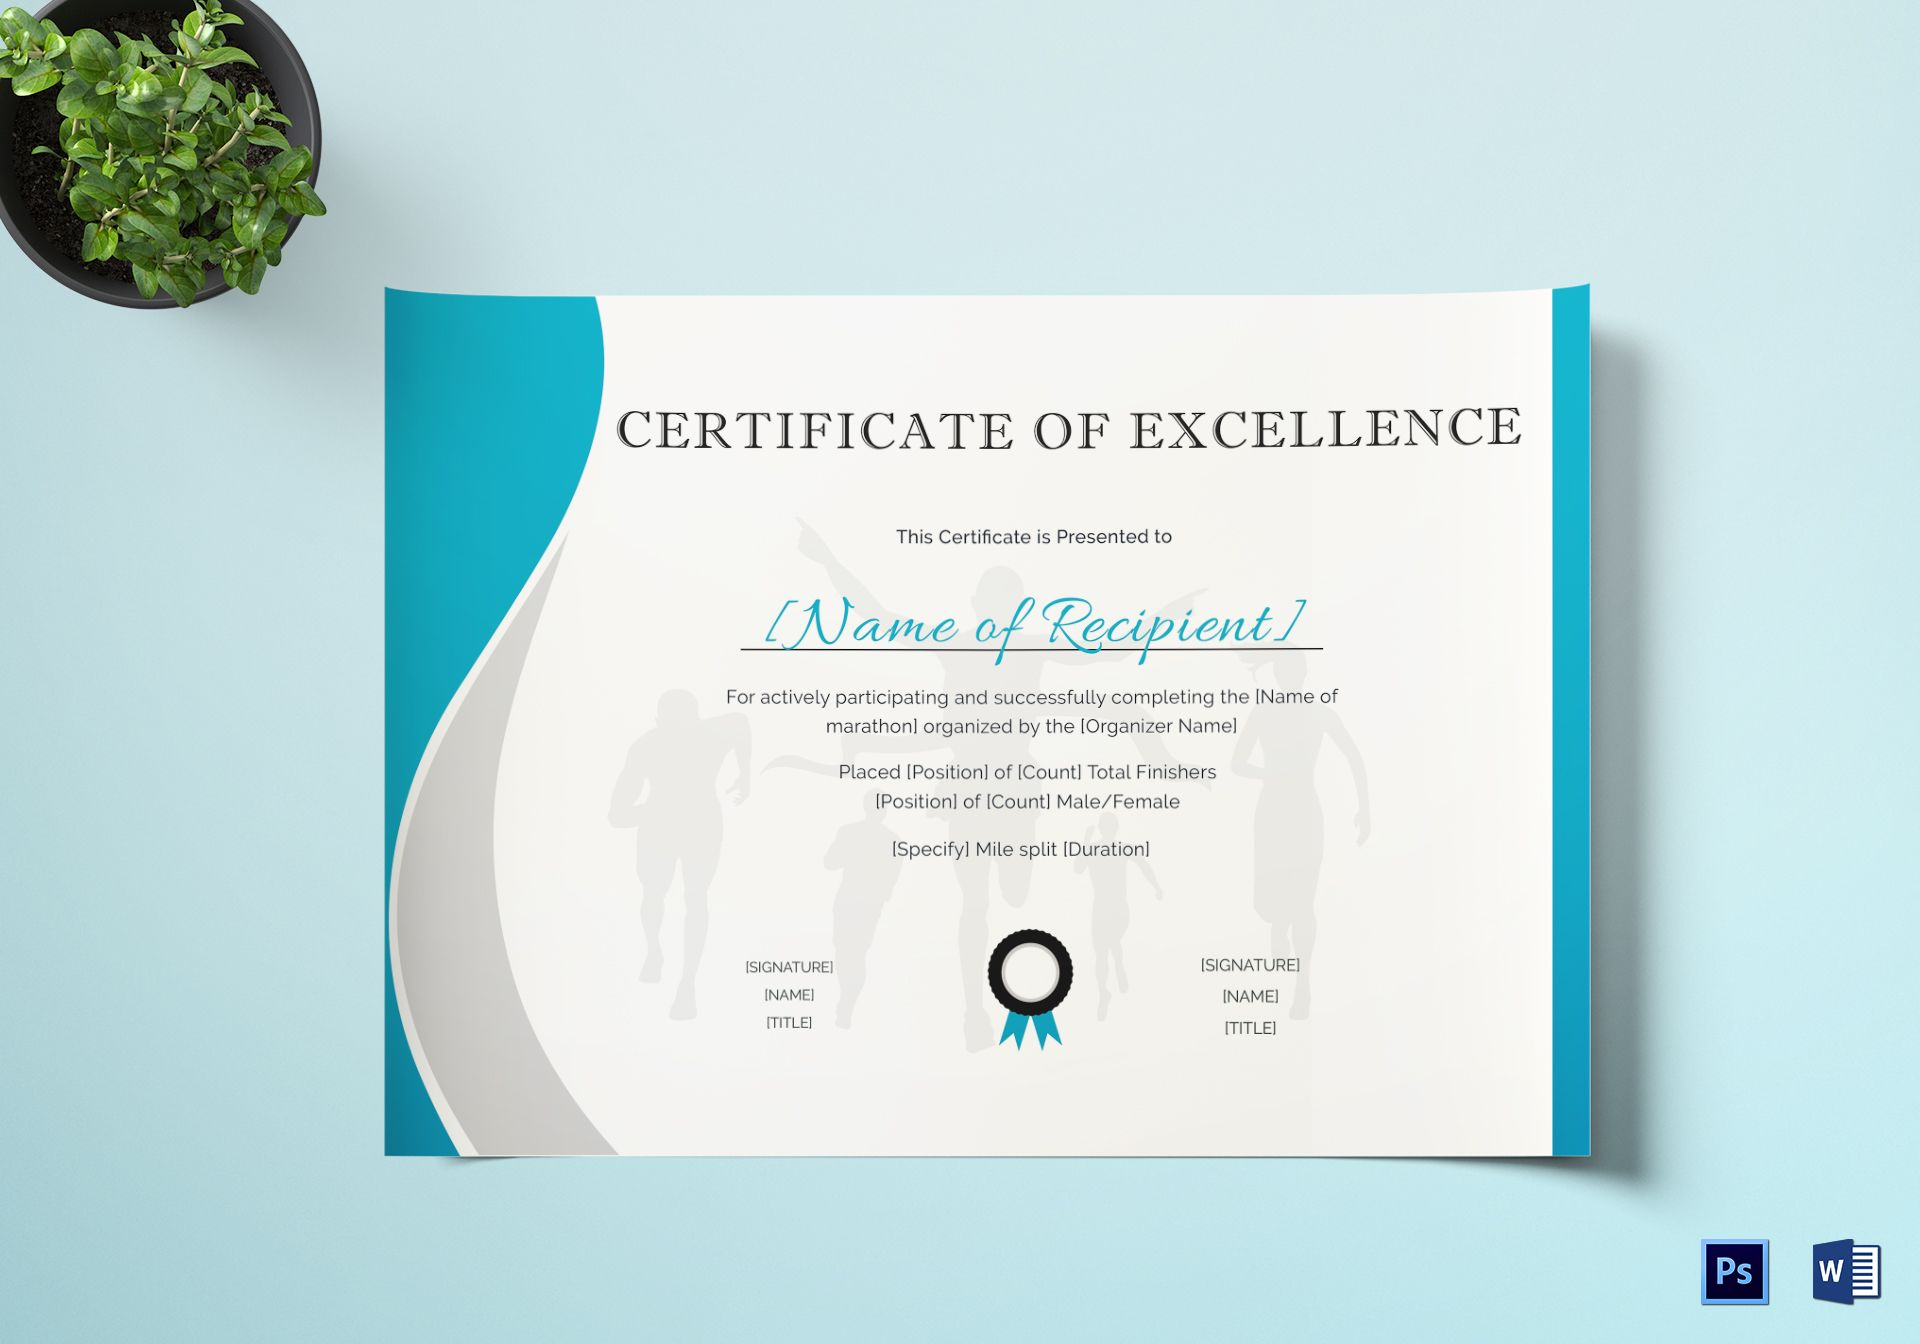 Excellence Certificate for Running